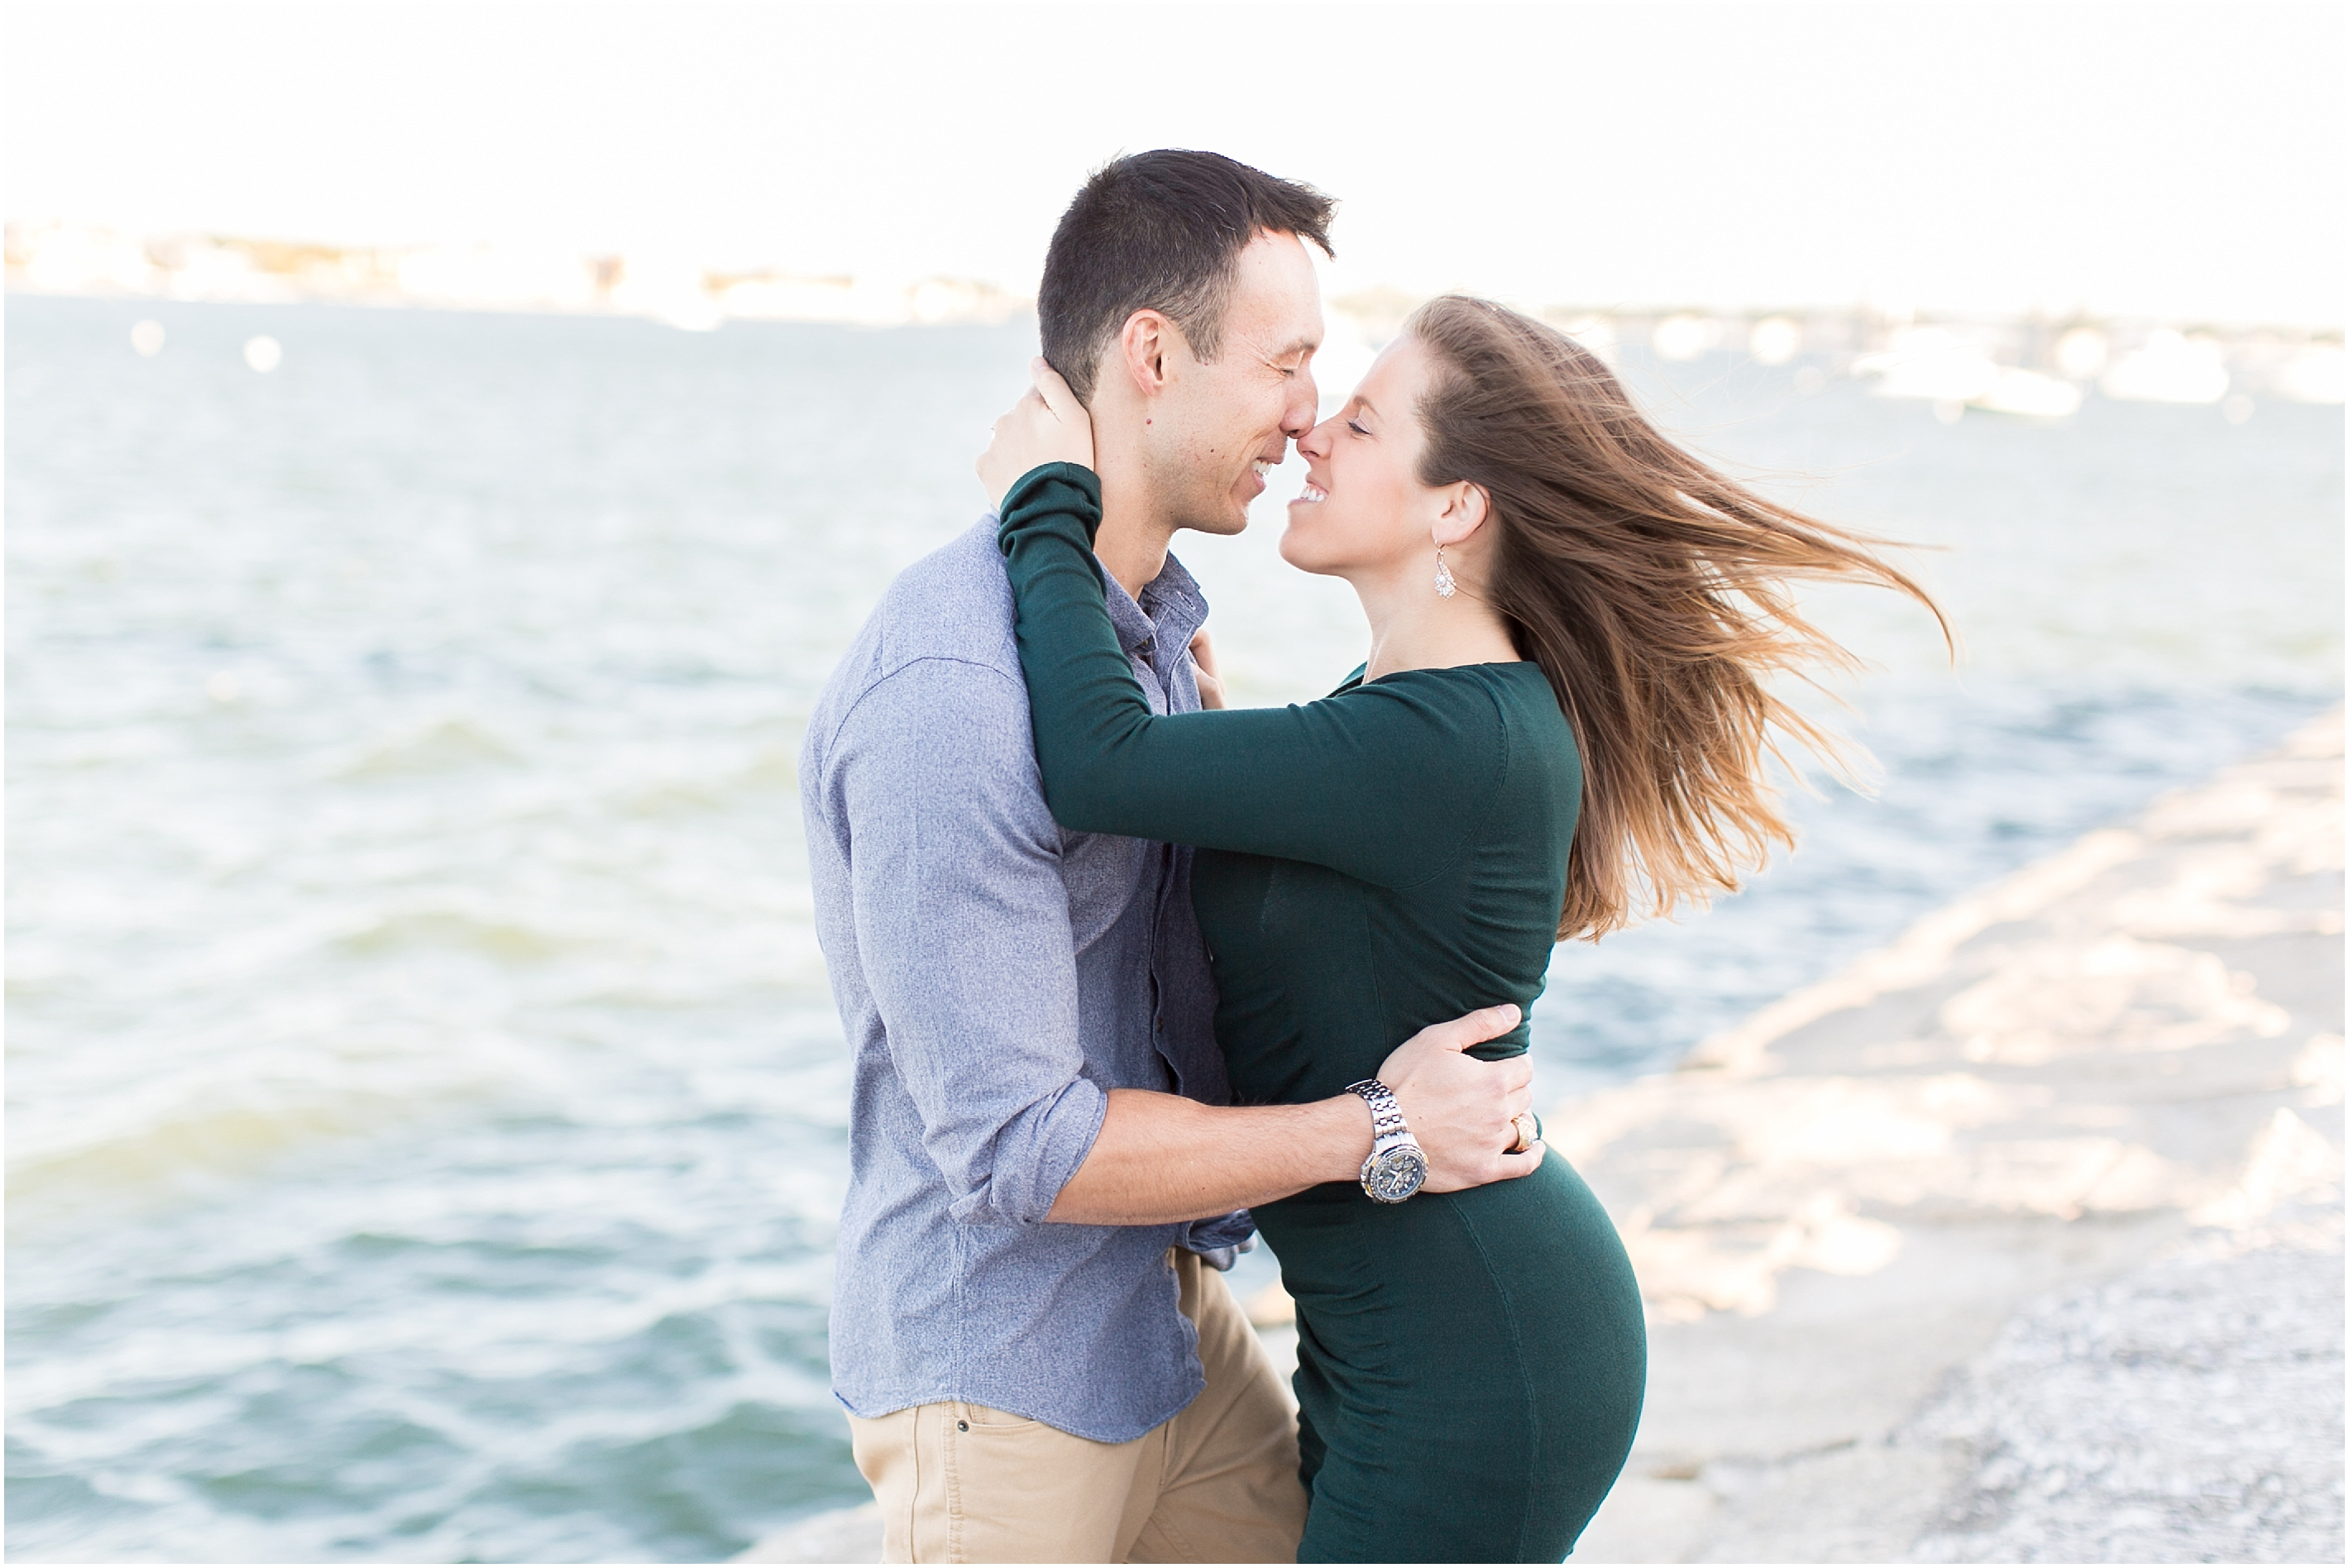 va_jessica_ryan_photography_st_augustine_florida_destination_engagement_photography_0122